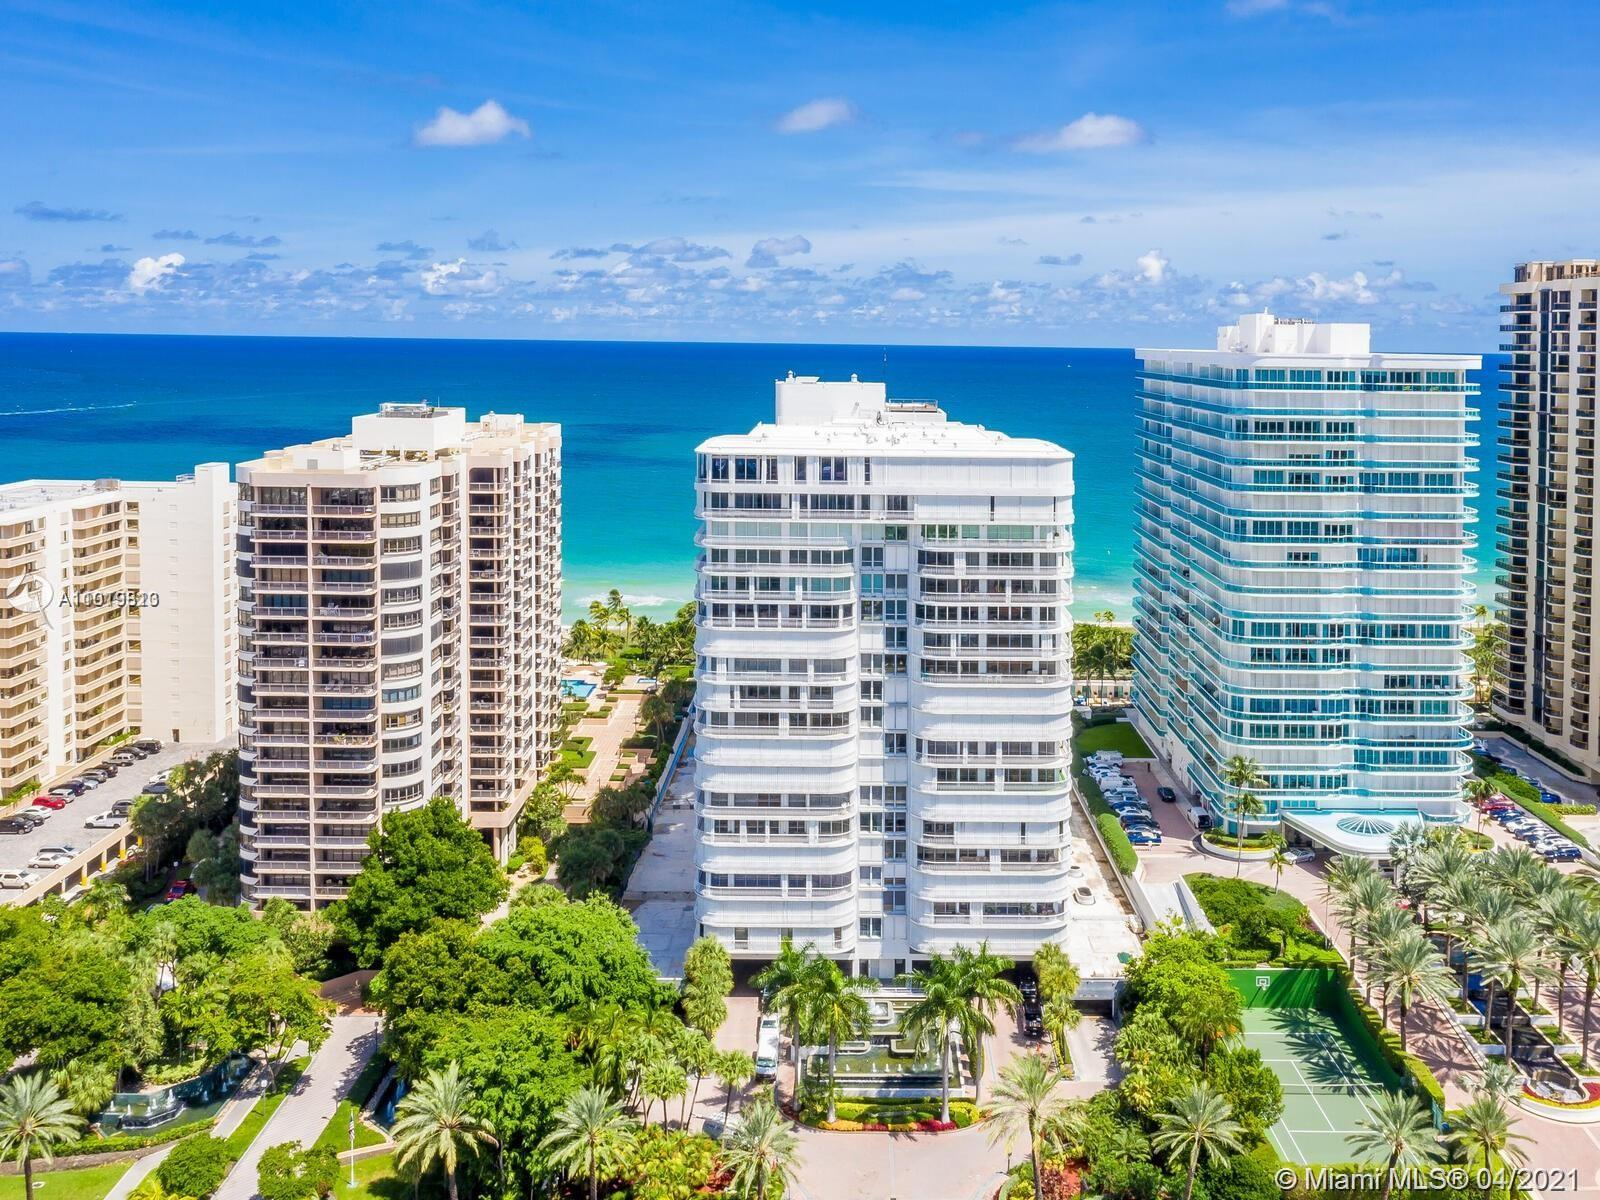 """RARELY AVAILABLE HIGH FLOOR """"07"""" LINE AT THE BAL HARBOUR 101. THIS IS THE MOST COVETED 2 BEDROOM LINE IN THE BUILDING WITH FANTASTIC SOUTHERN VIEWS FROM THE CITY SKYLINE TO THE OCEAN. READY FOR TOTAL RENOVATION TO YOUR TASTE. FLEXIBLE FLOOR PLAN POSSIBILITIES TO FIT ALL YOUR NEEDS. BAL HARBOUR 101 IS A PRESTIGIOUS, FULL SERVICE BUILDING WHICH OFFERS RESTAURANT, TENNIS, FITNESS CLUB, POOL, HOTEL ROOMS, AND HAS RECENTLY UNDERGONE A COMPLETE RENOVATION. GREAT LOCATION STEPS AWAY FROM WORLD RENOWNED BAL HARBOUR SHOPS."""